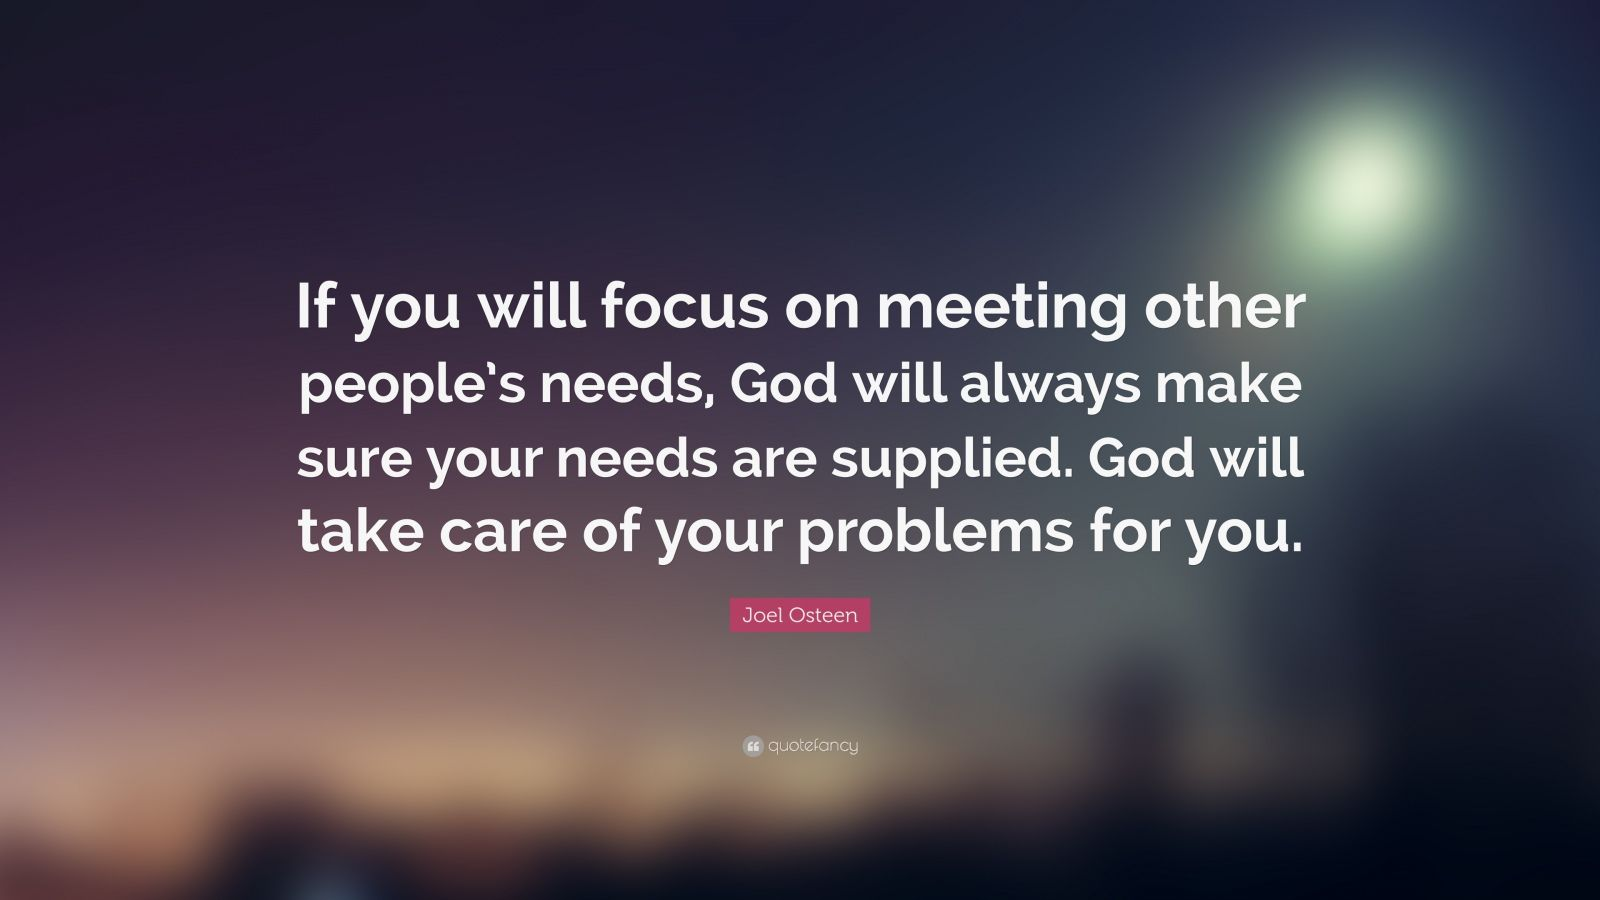 """Joel Osteen Quote: """"If you will focus on meeting other people's needs, God will always make sure your needs are supplied. God will take care of your problems for you."""""""